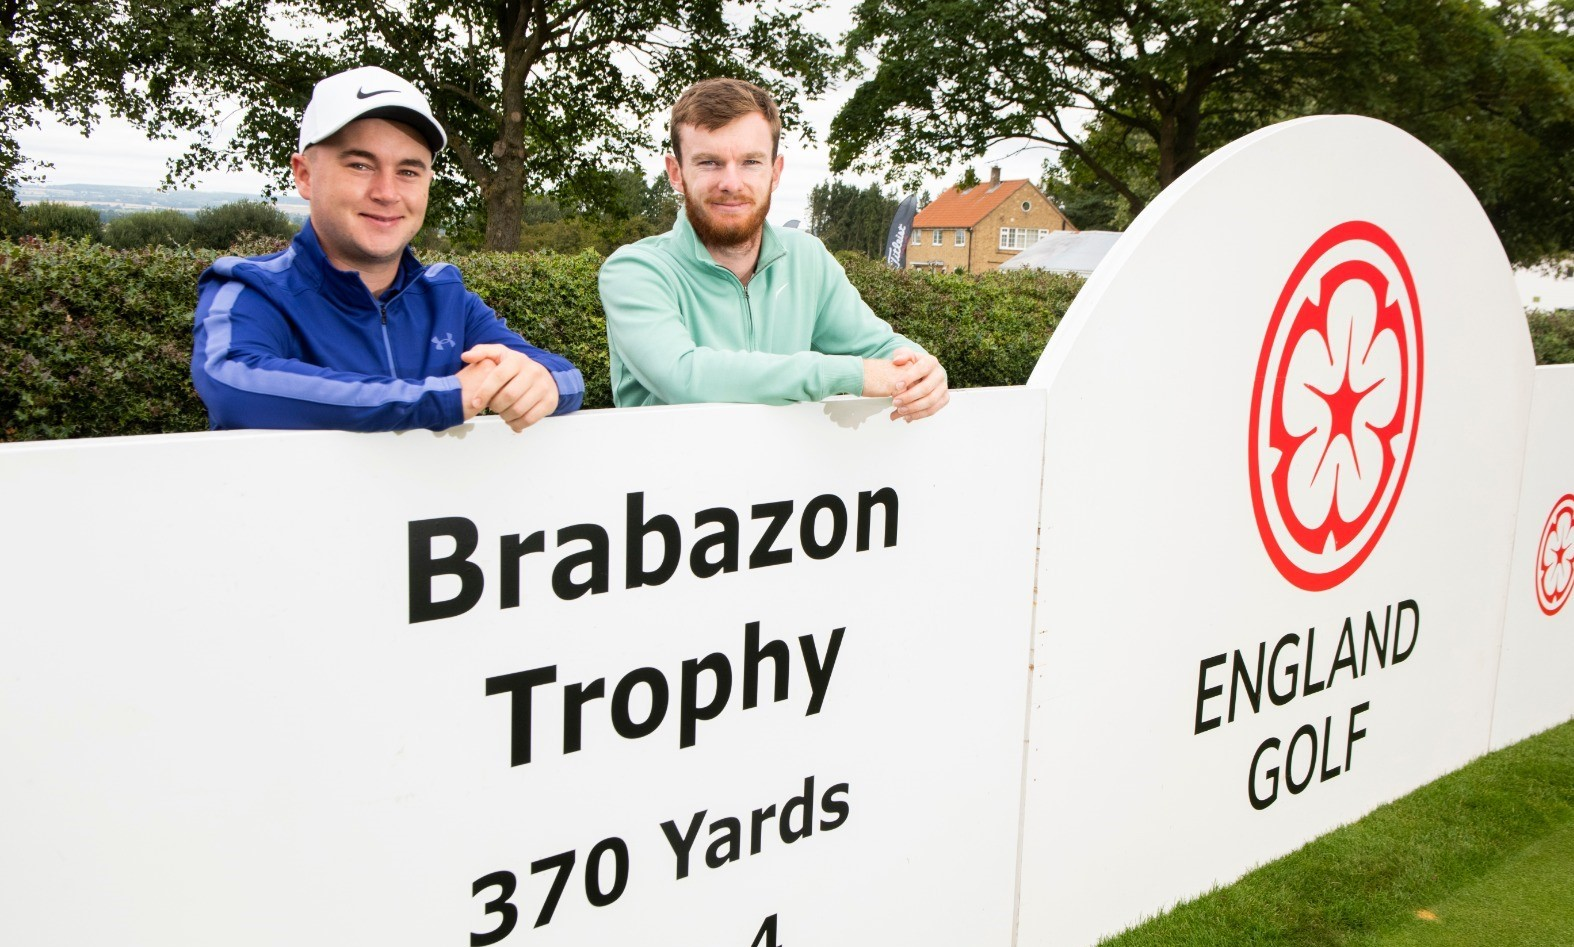 Brabazon Trophy: Shepherd and Gough set eyes on another prize